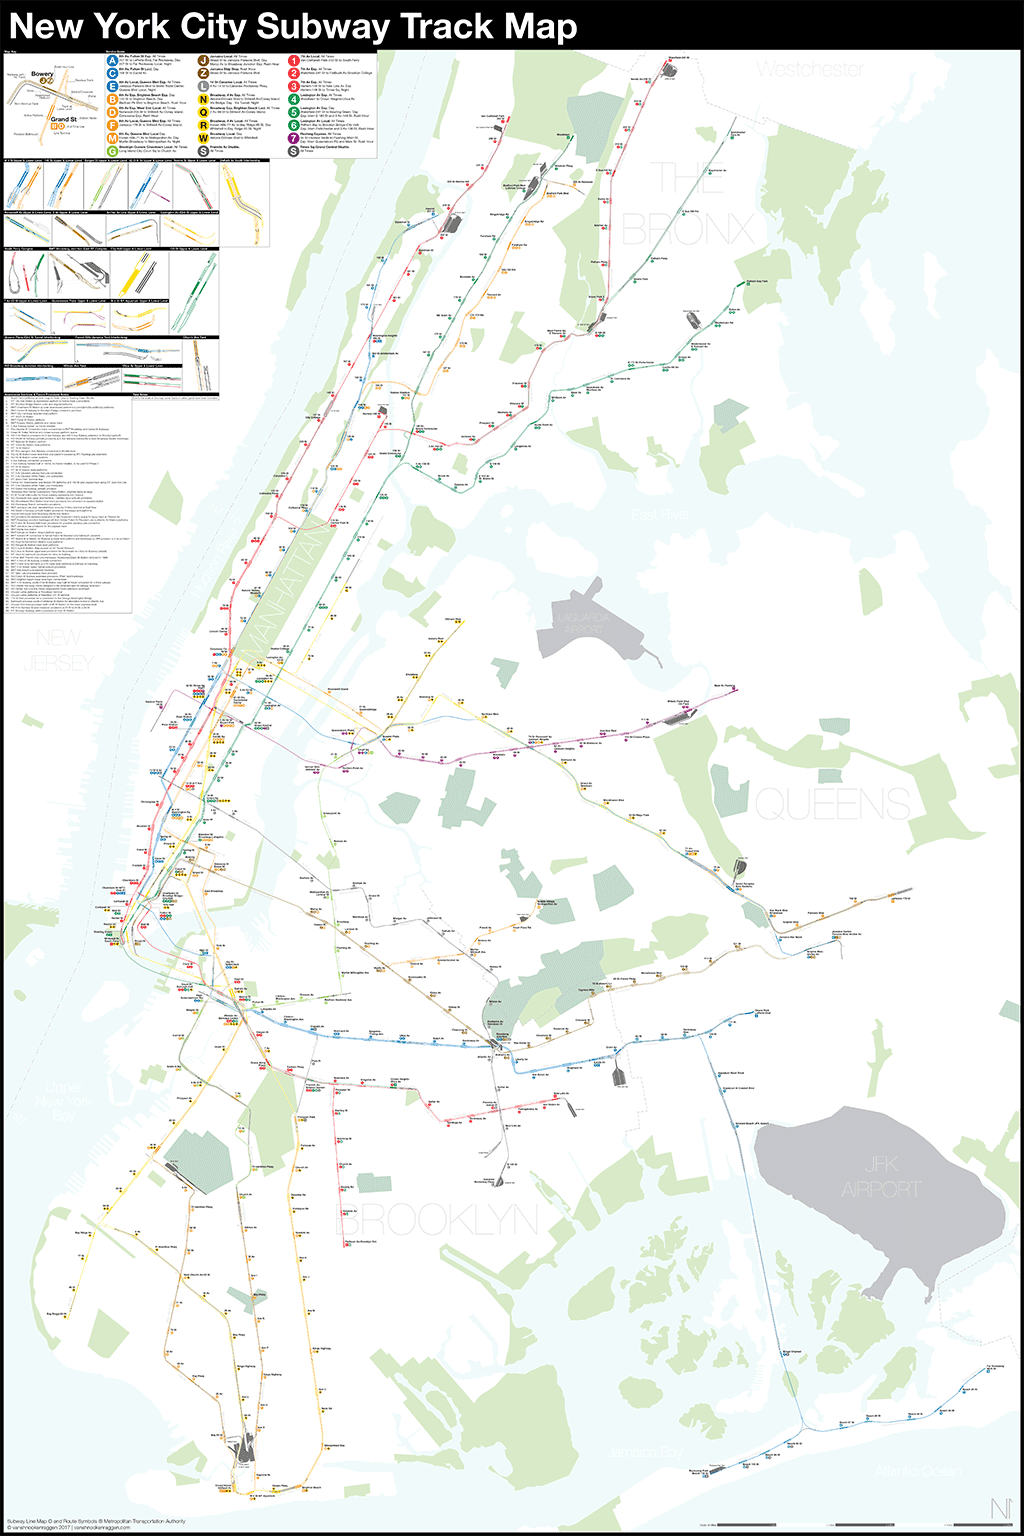 A Complete and Geographically Accurate NYC Subway Track Map ...